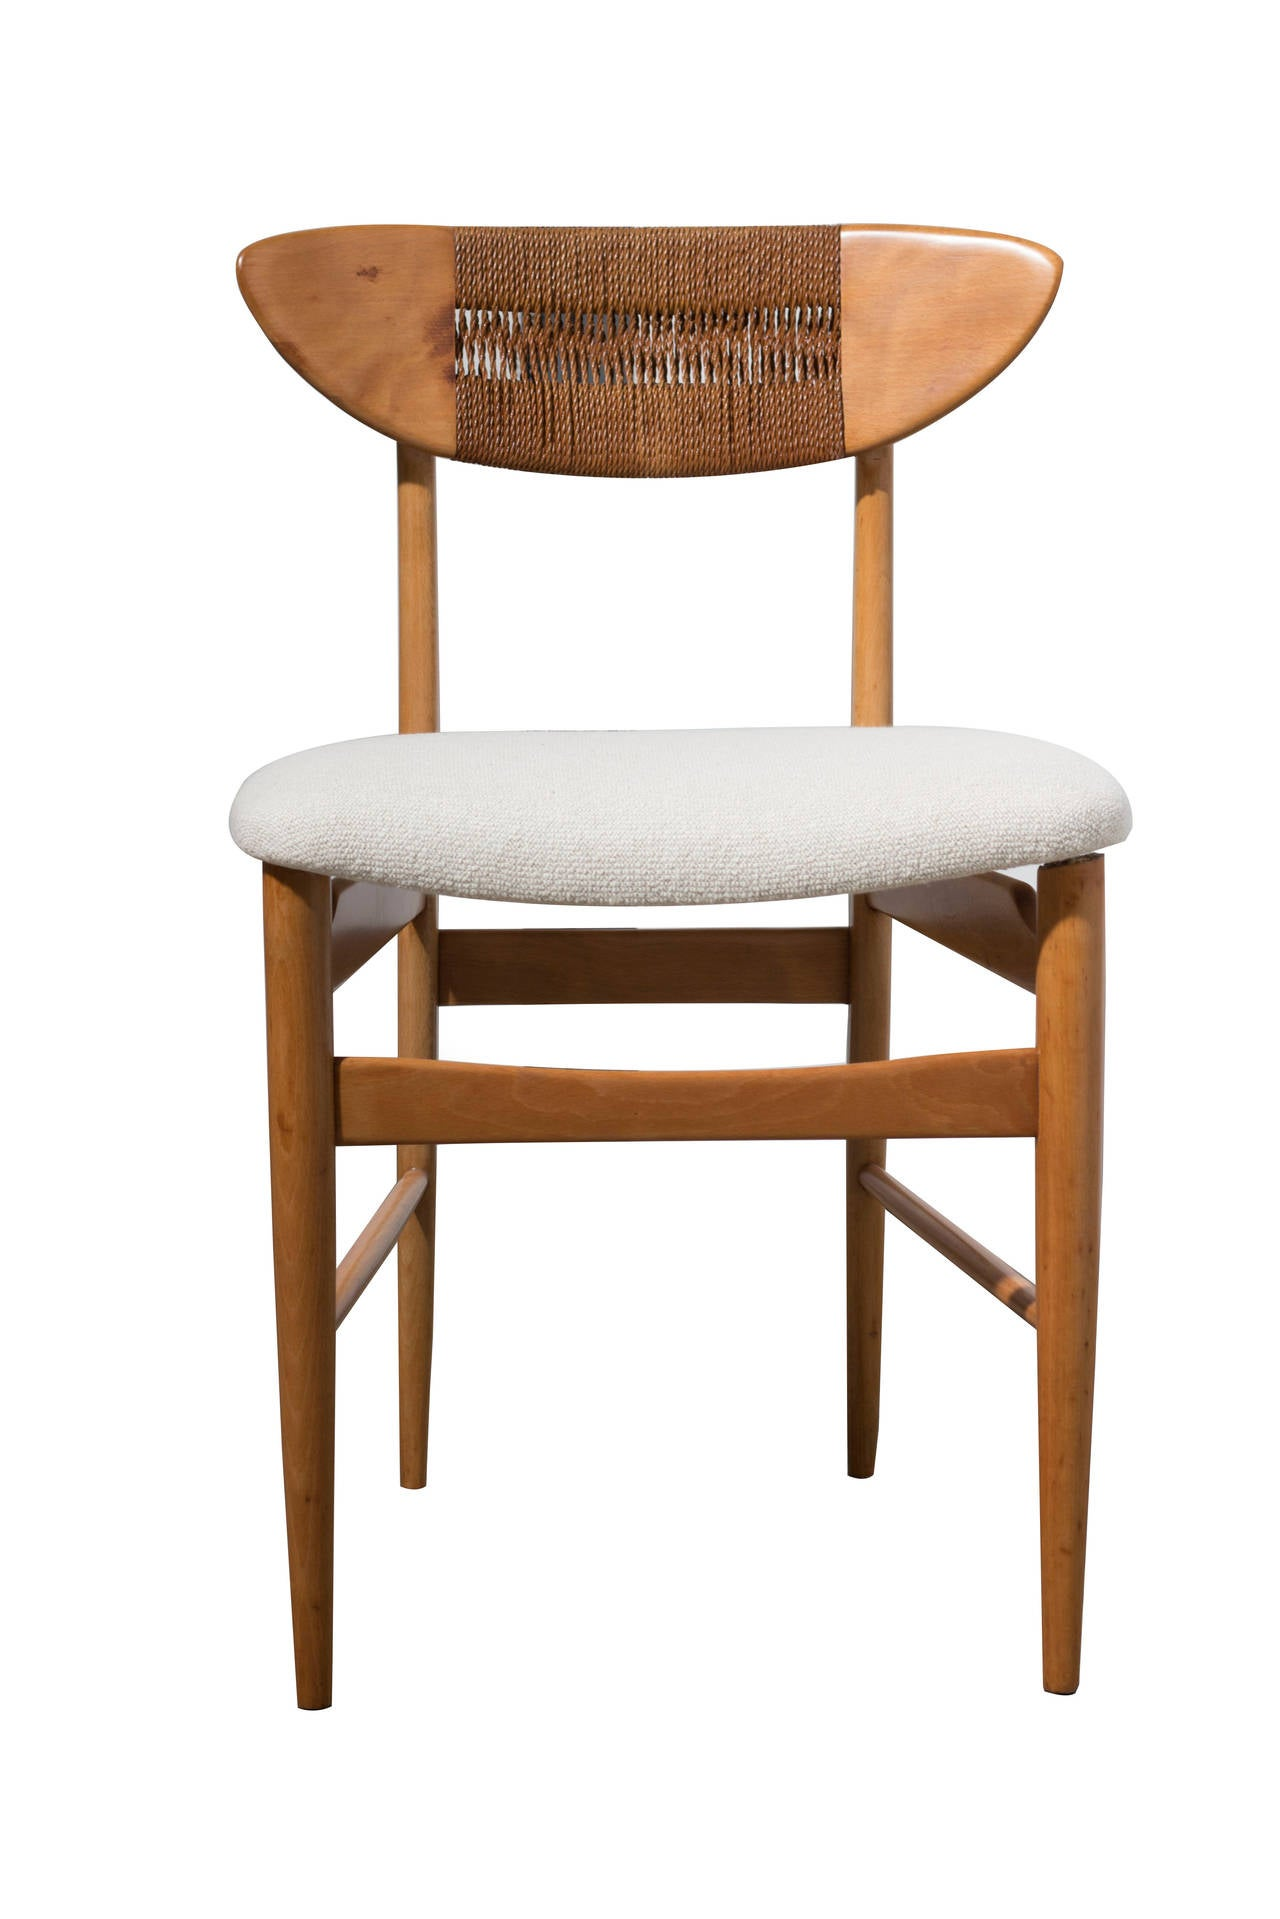 danish woven rope and teak side chairs in the manner of hans wegner at